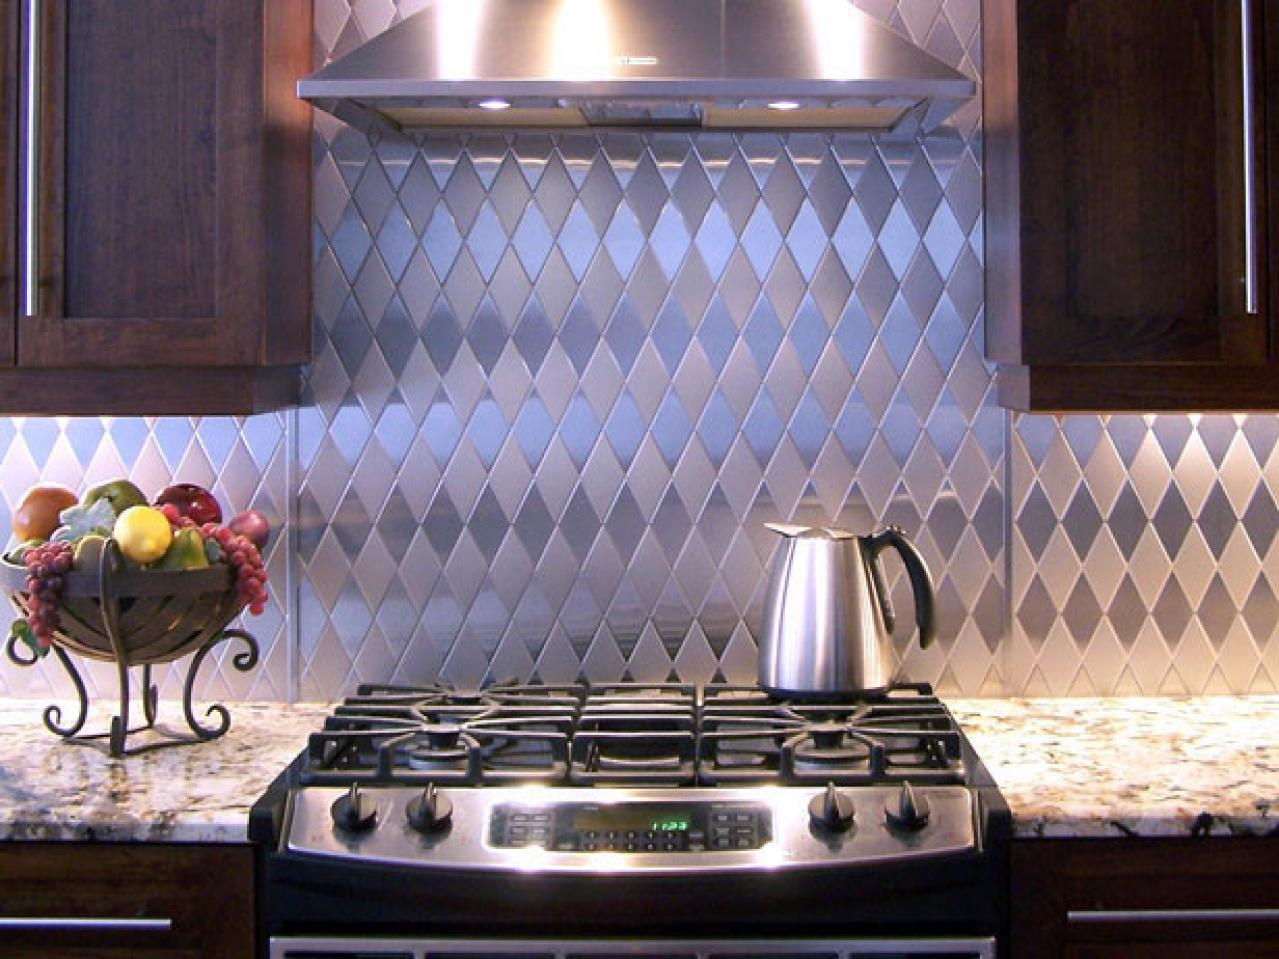 Lively kitchen back wall made of stainless steel